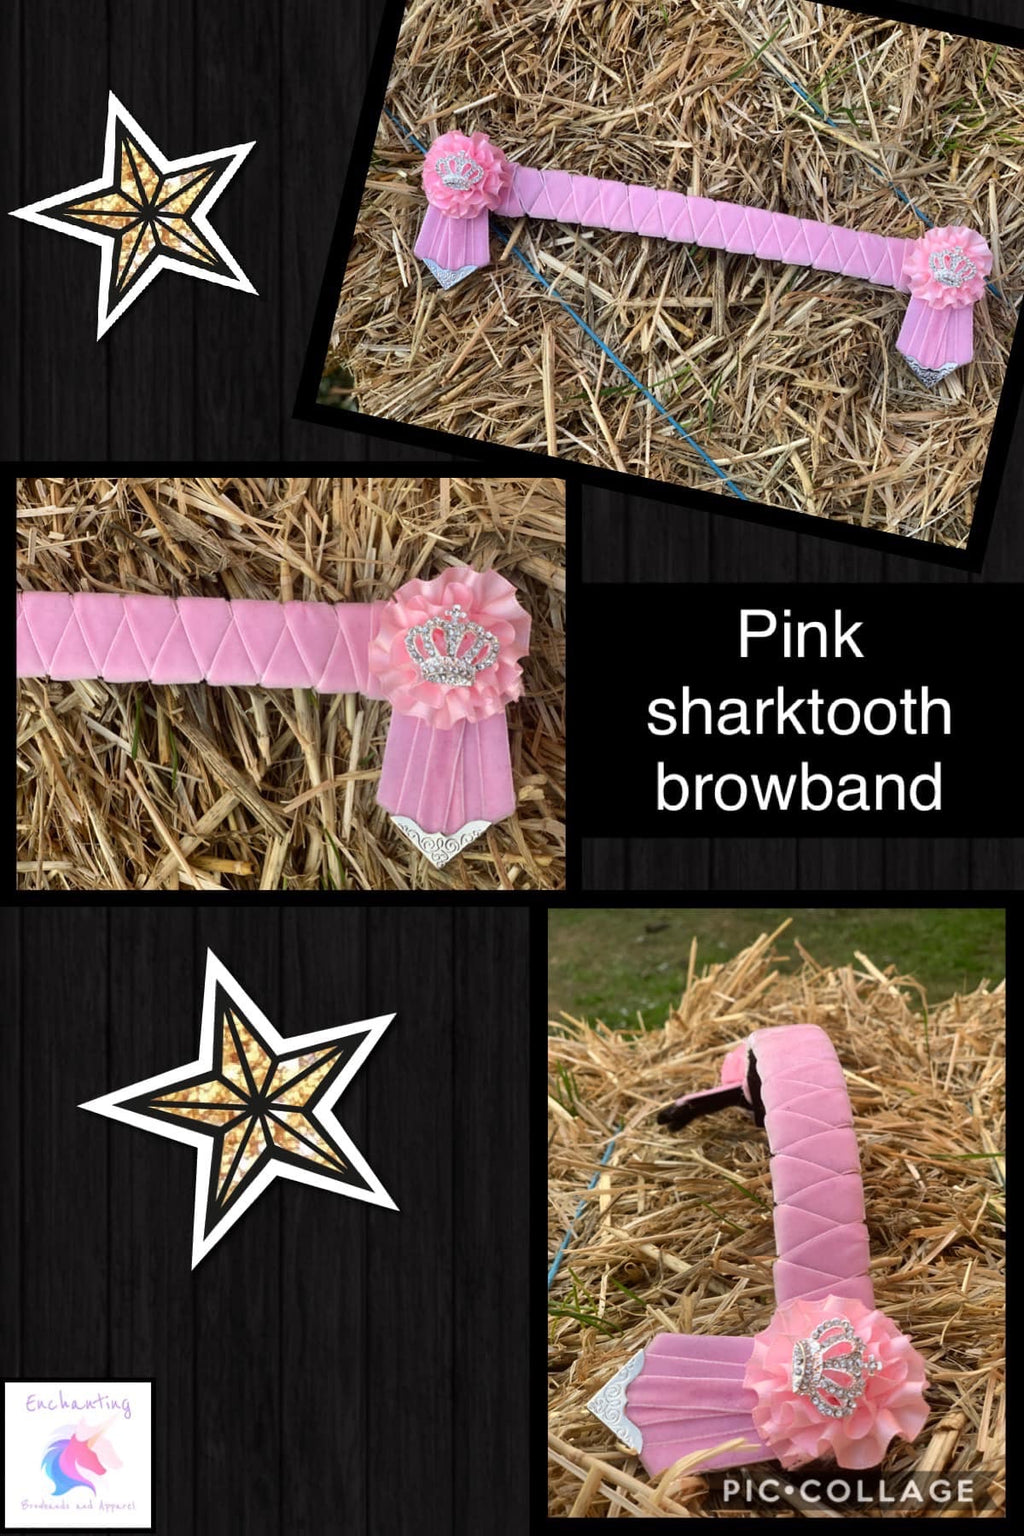 Light pink shark tooth velvet browband